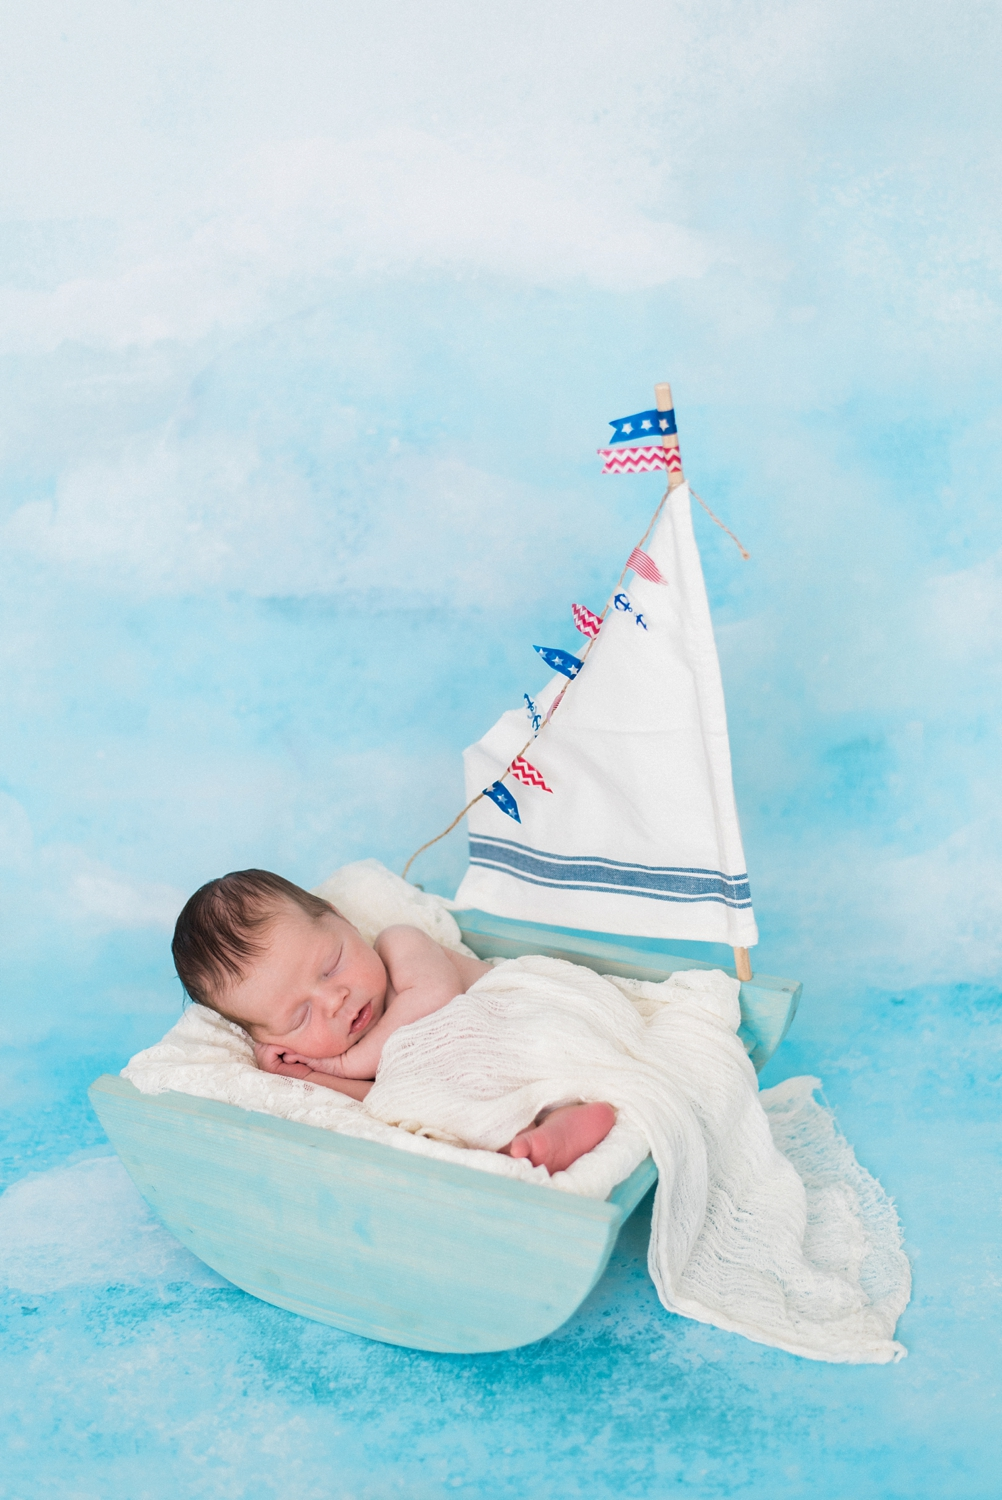 portland-newborn-session-blue-sailboat-baby-boy-shelley-marie-photo-186_cr.jpg